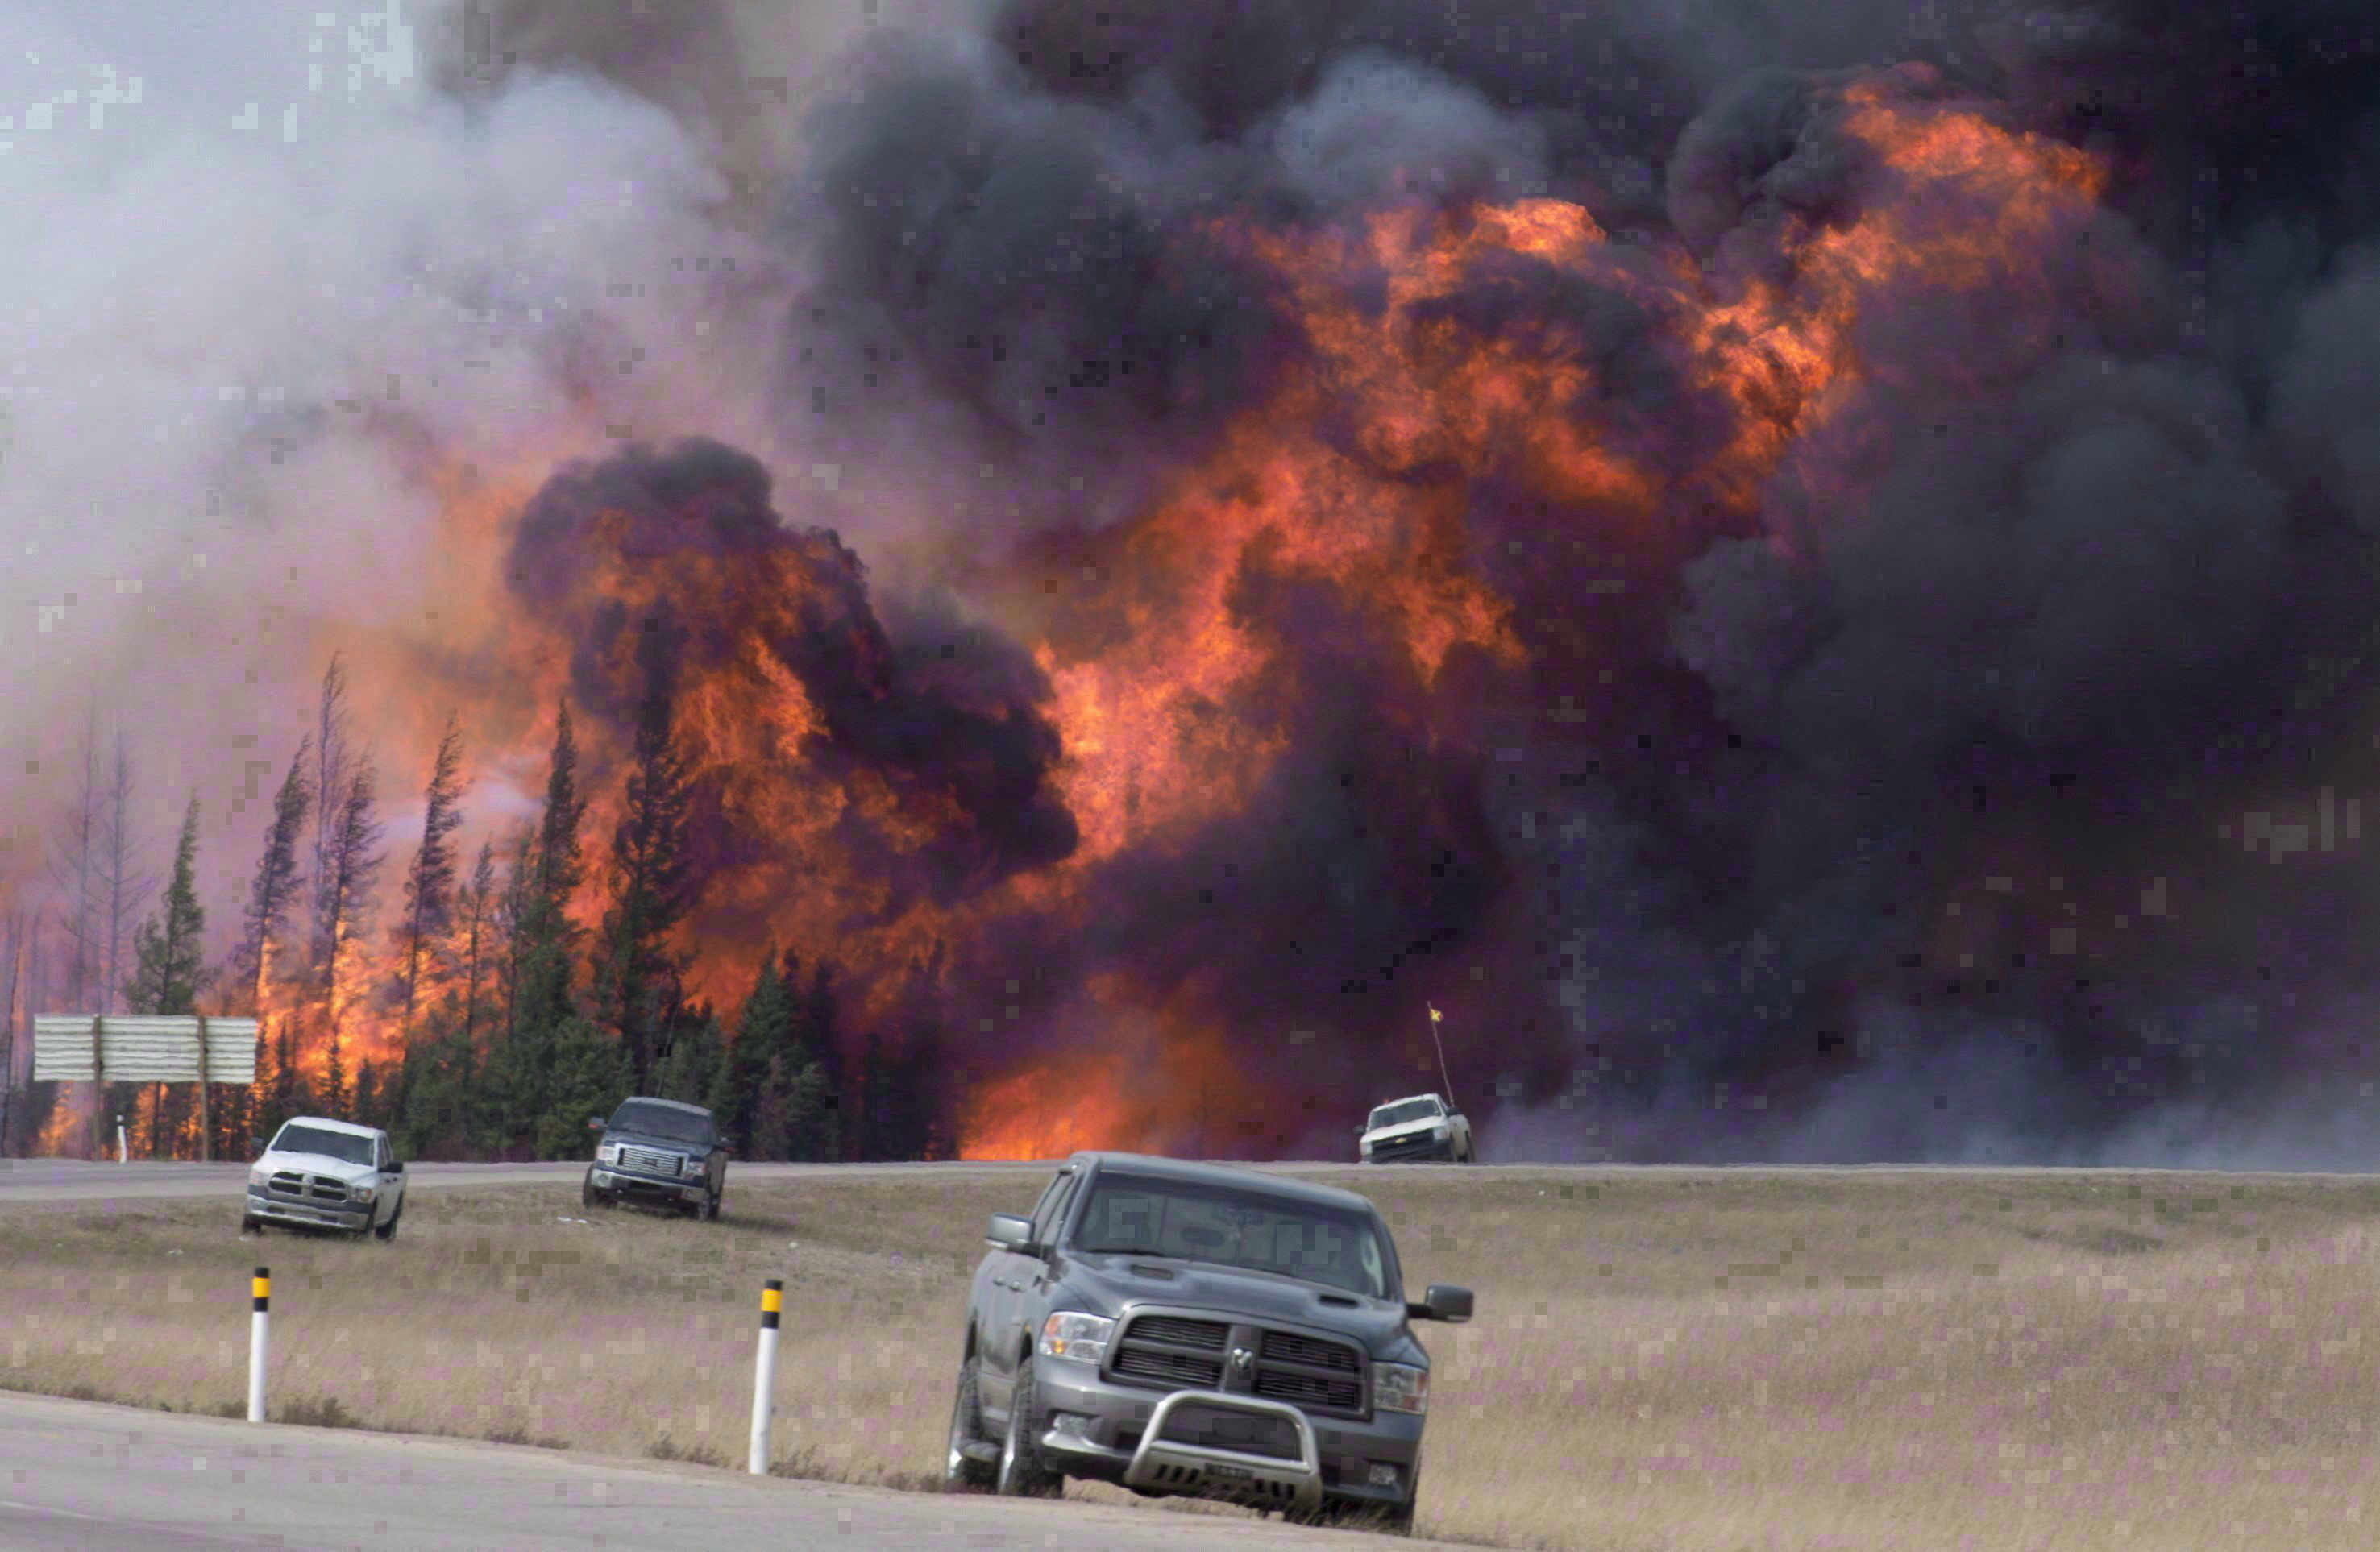 A wildfire ripped through the forest south of Fort McMurray, forcing thousands to flee for their lives. (Jonathan Hayward/The Canadian Press)